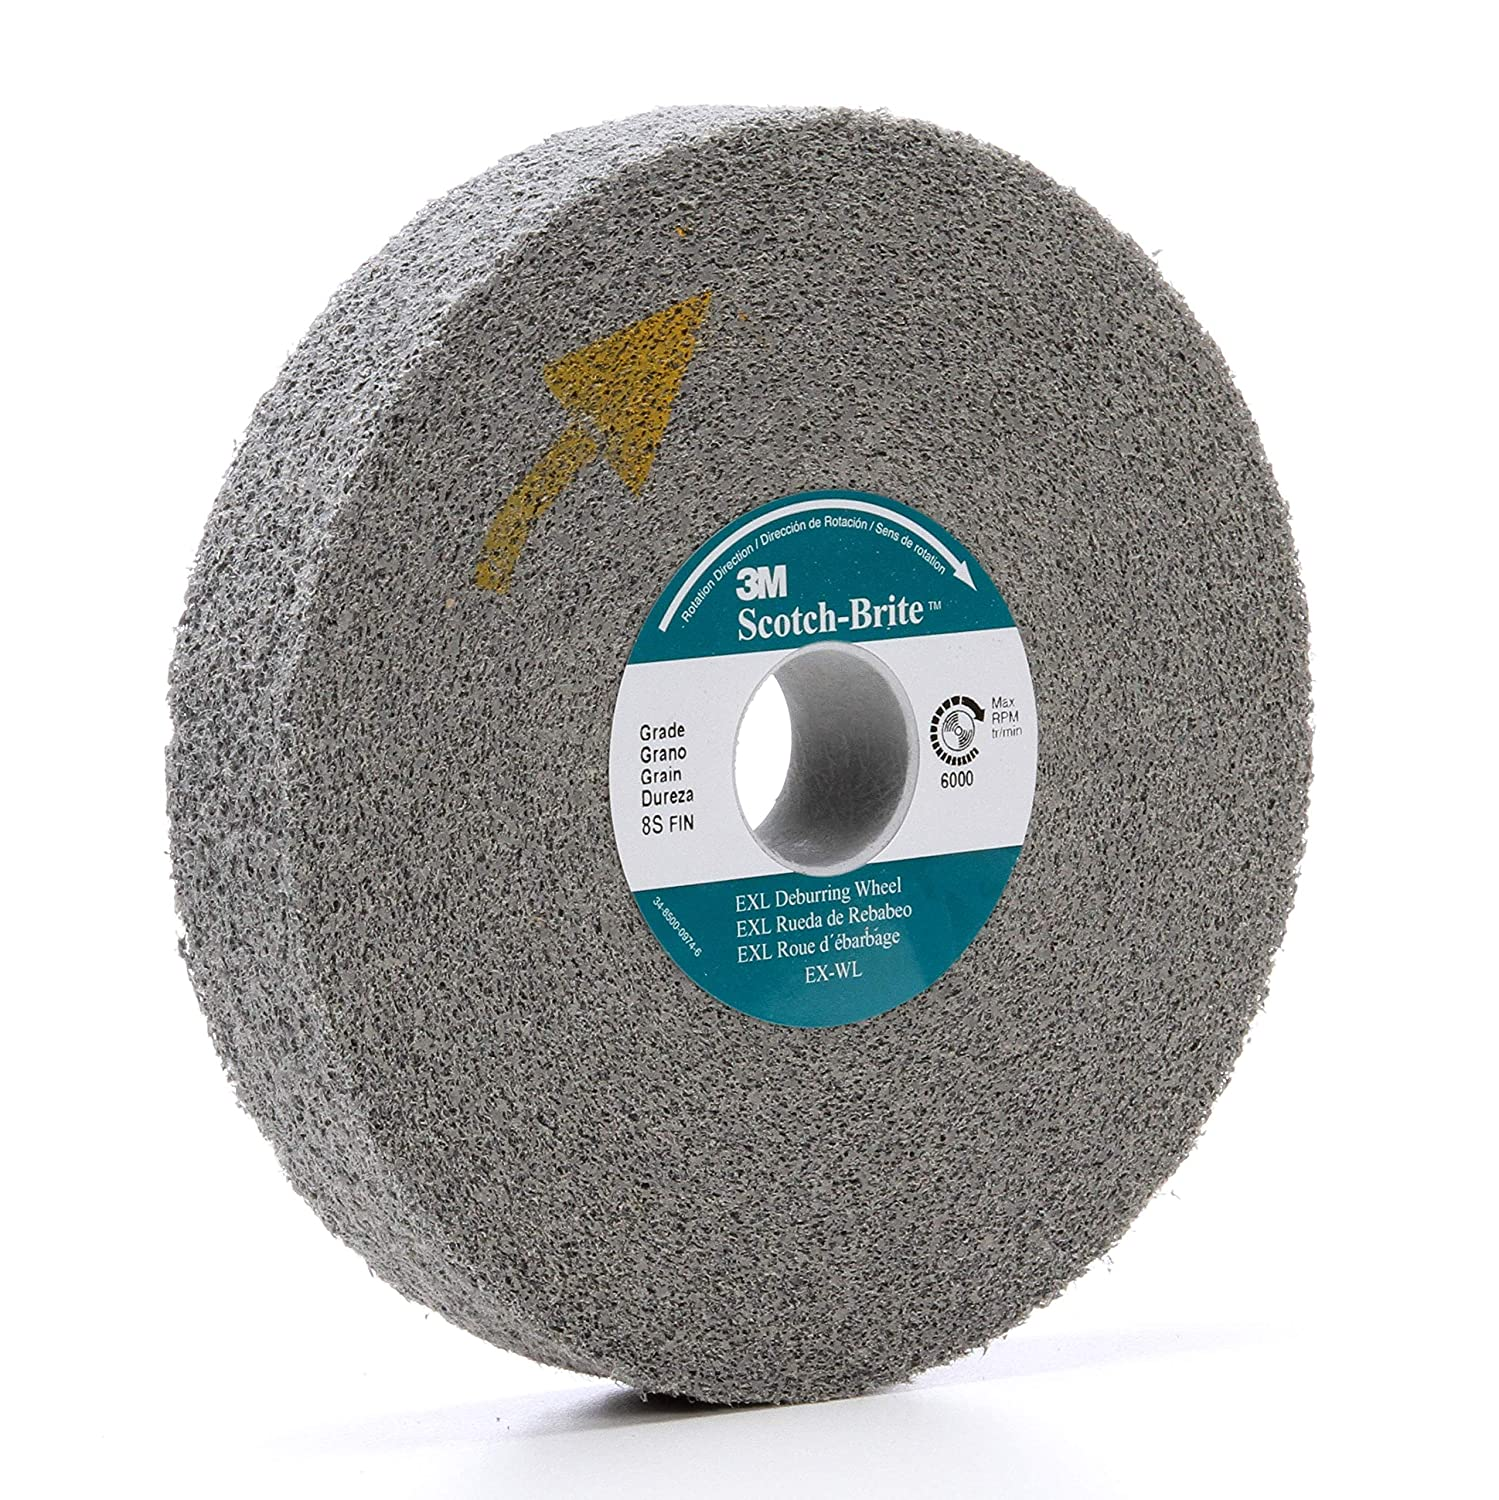 Pack of 60 22100 RPM Abrasive Grit Scotch-Brite 13984 Cut and Polish Unitized Wheel 2 Diameter 2 x 1//8 x 1//4 5A FIN